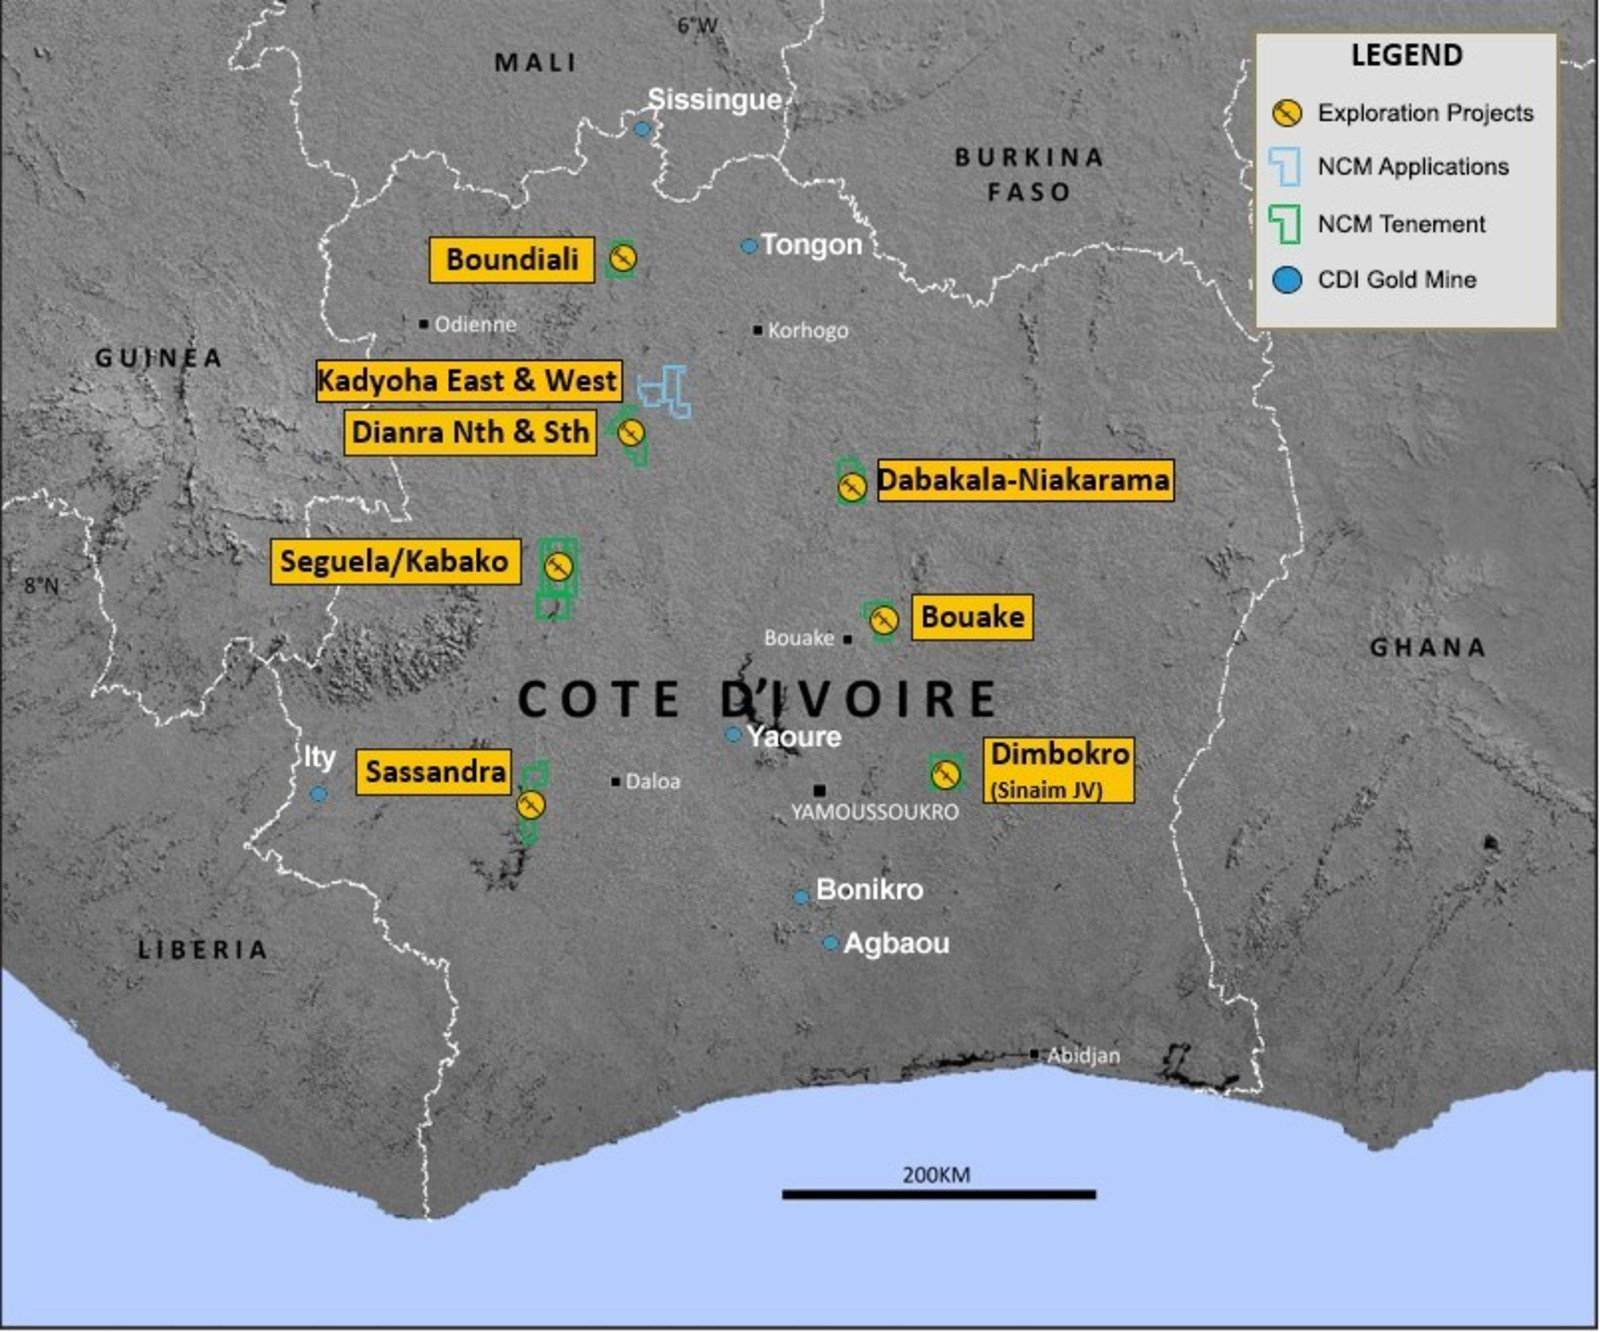 Figure 1: West African Regional Exploration Portfolio